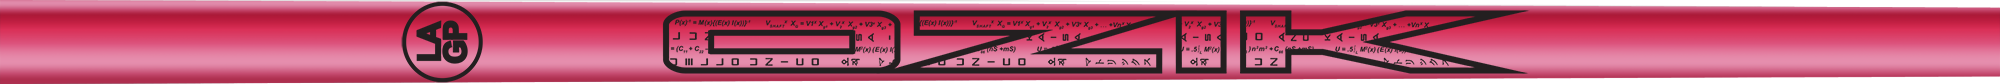 Ozik White Tie: Neon Pink Black Gloss - Wood 50 S